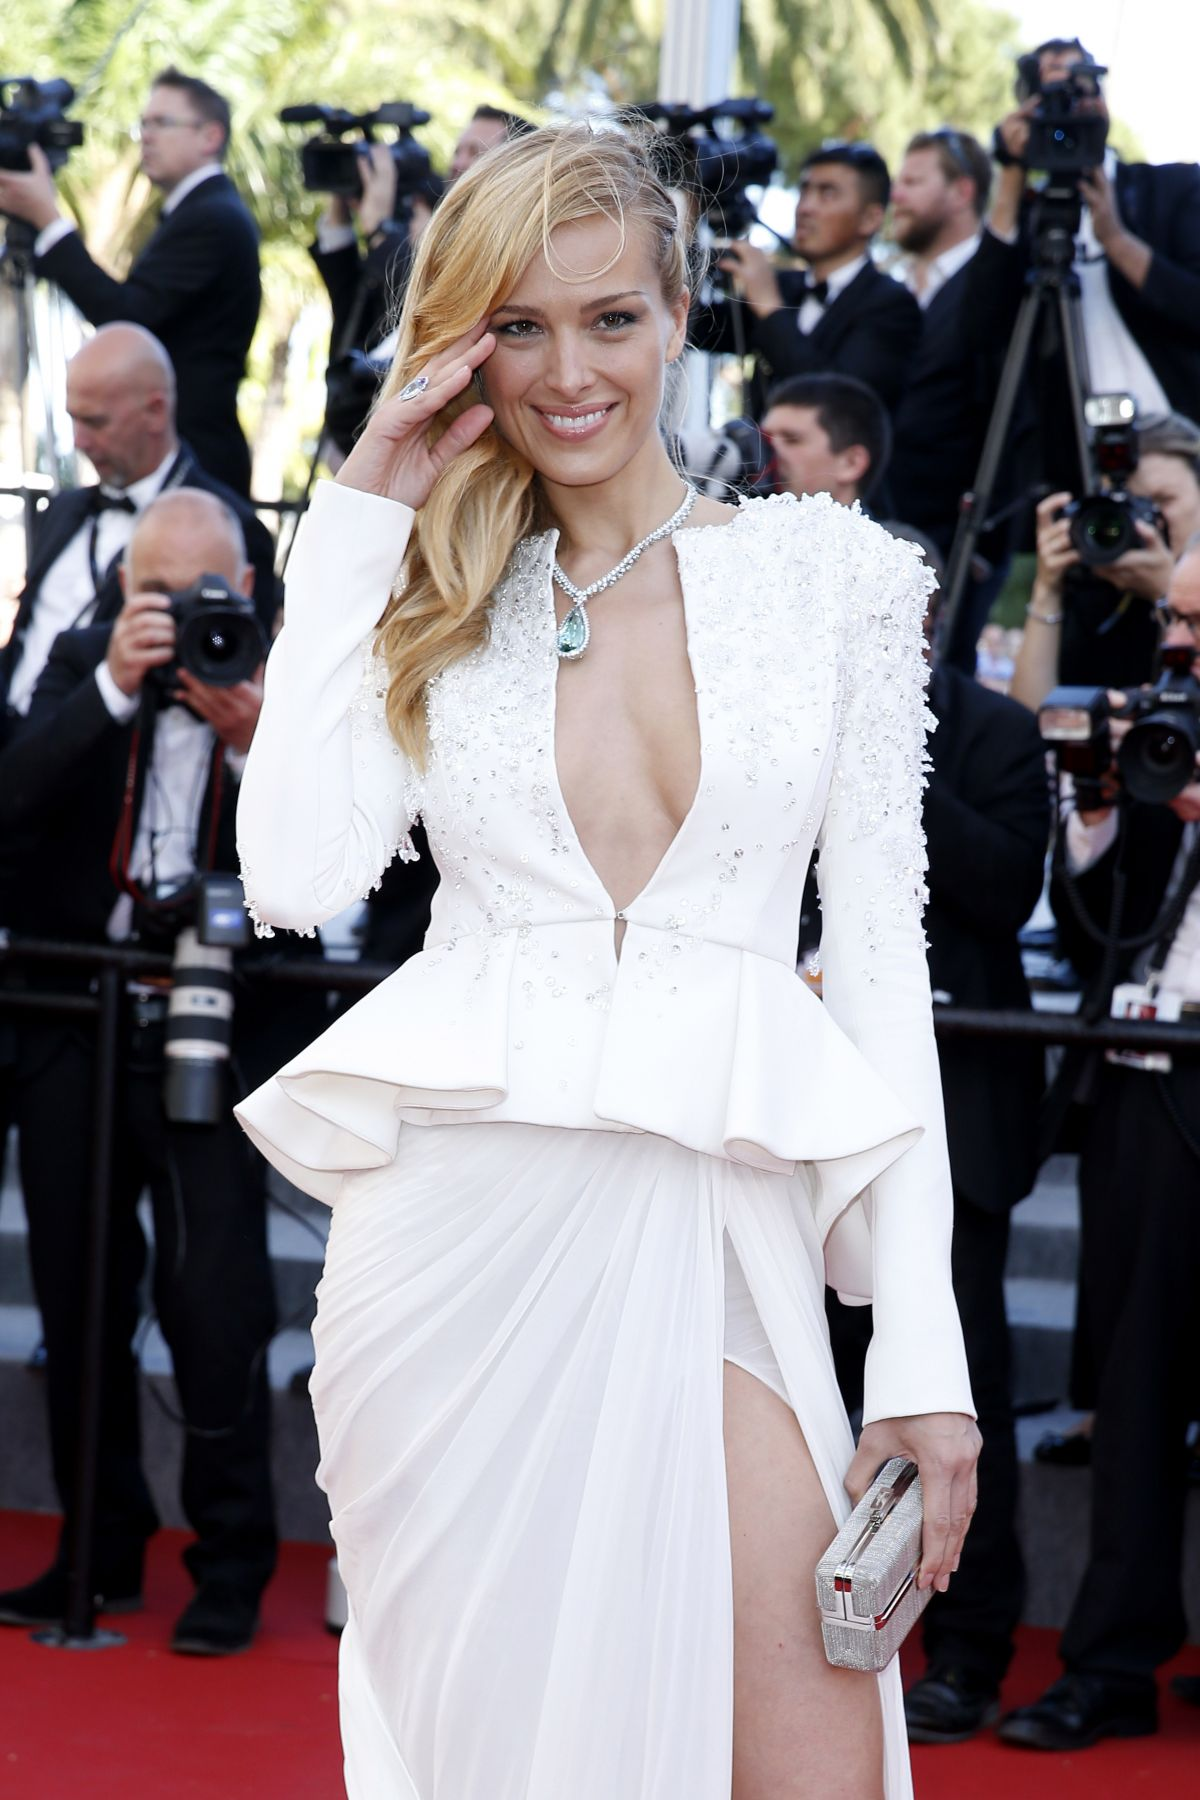 PETRA NEMCOVA at Youth Premiere at Cannes Film Festival